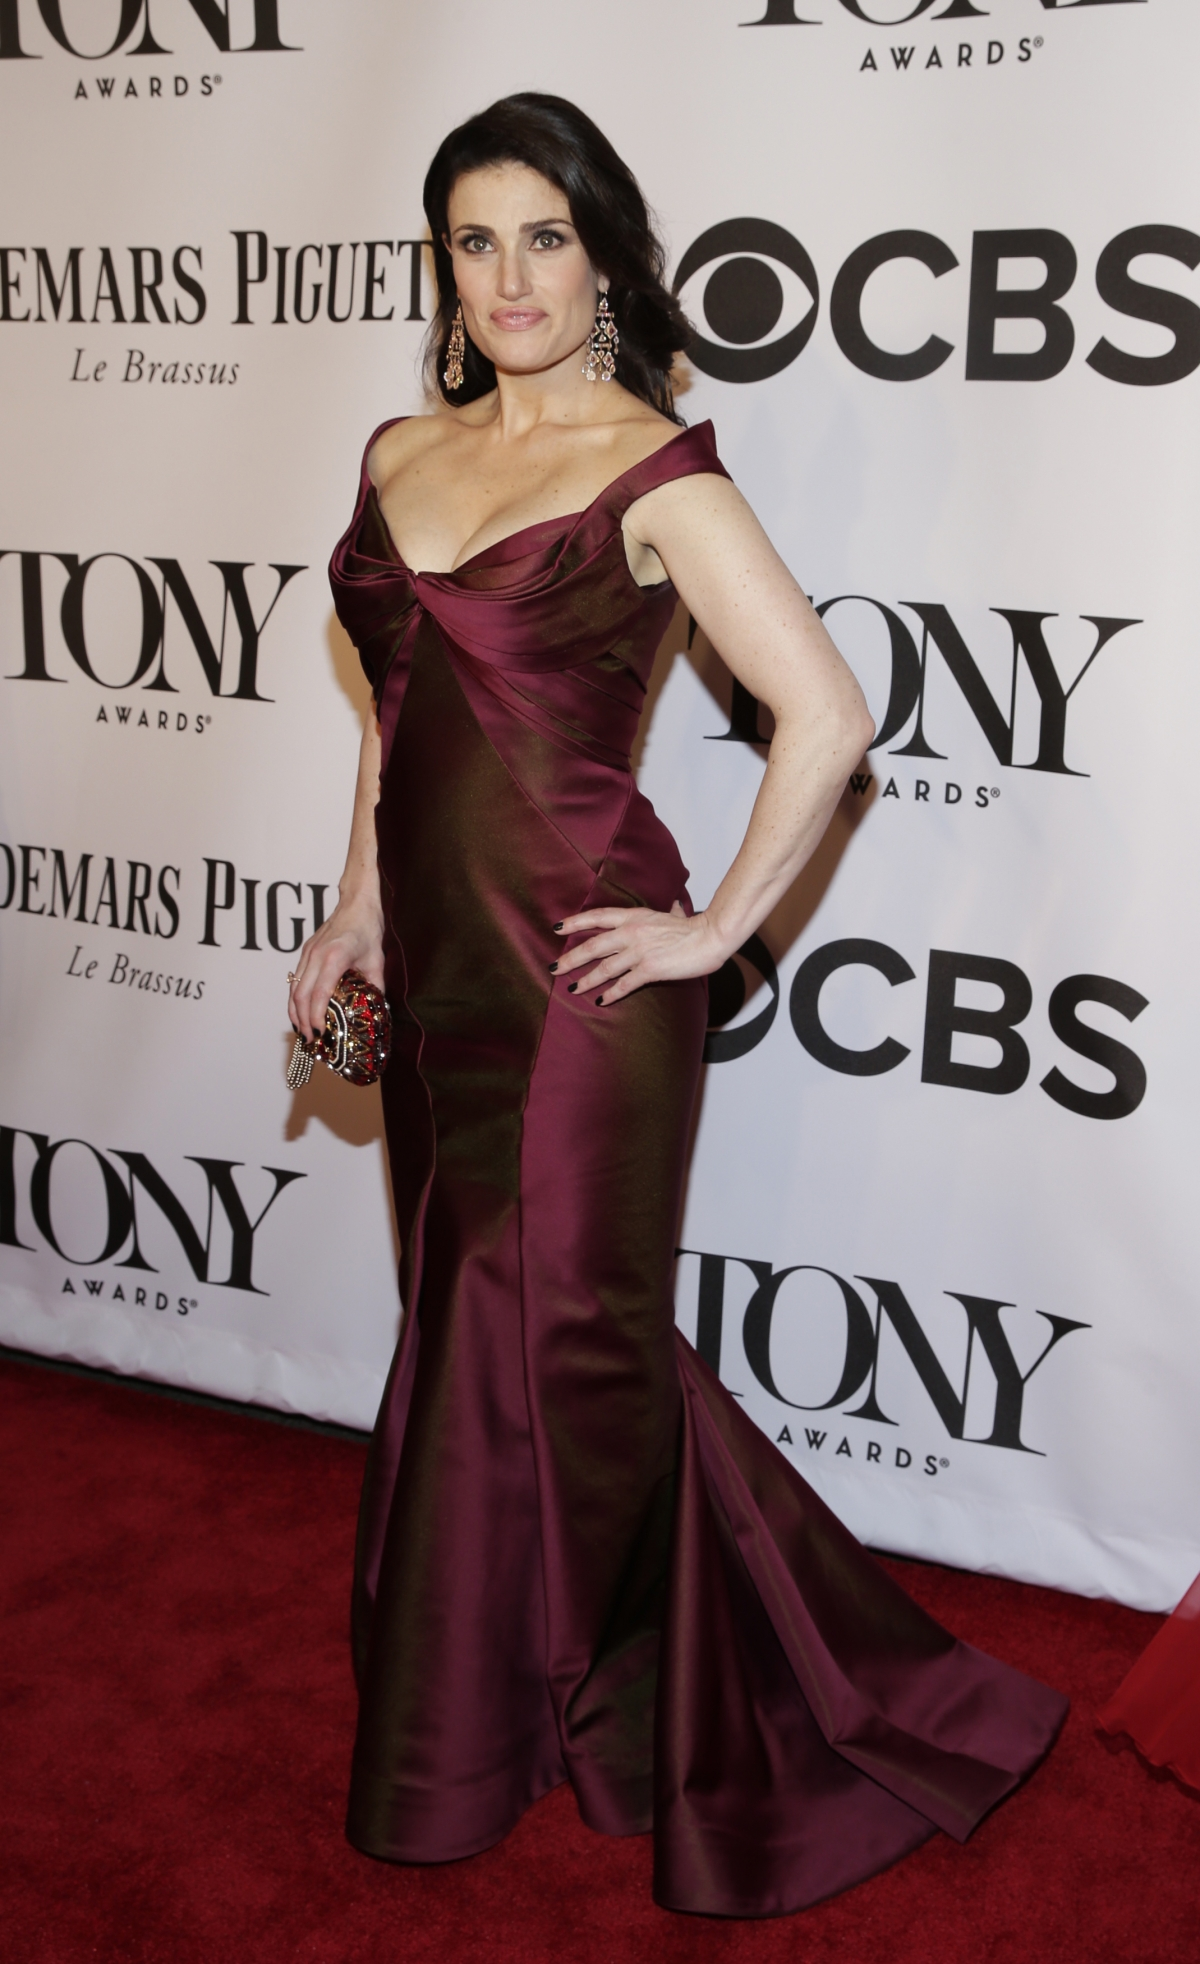 Actress Idina Menzel arrives for the American Theatre Wing's 68th annual Tony Awards at Radio City Music Hall in New York, June 8, 2014.